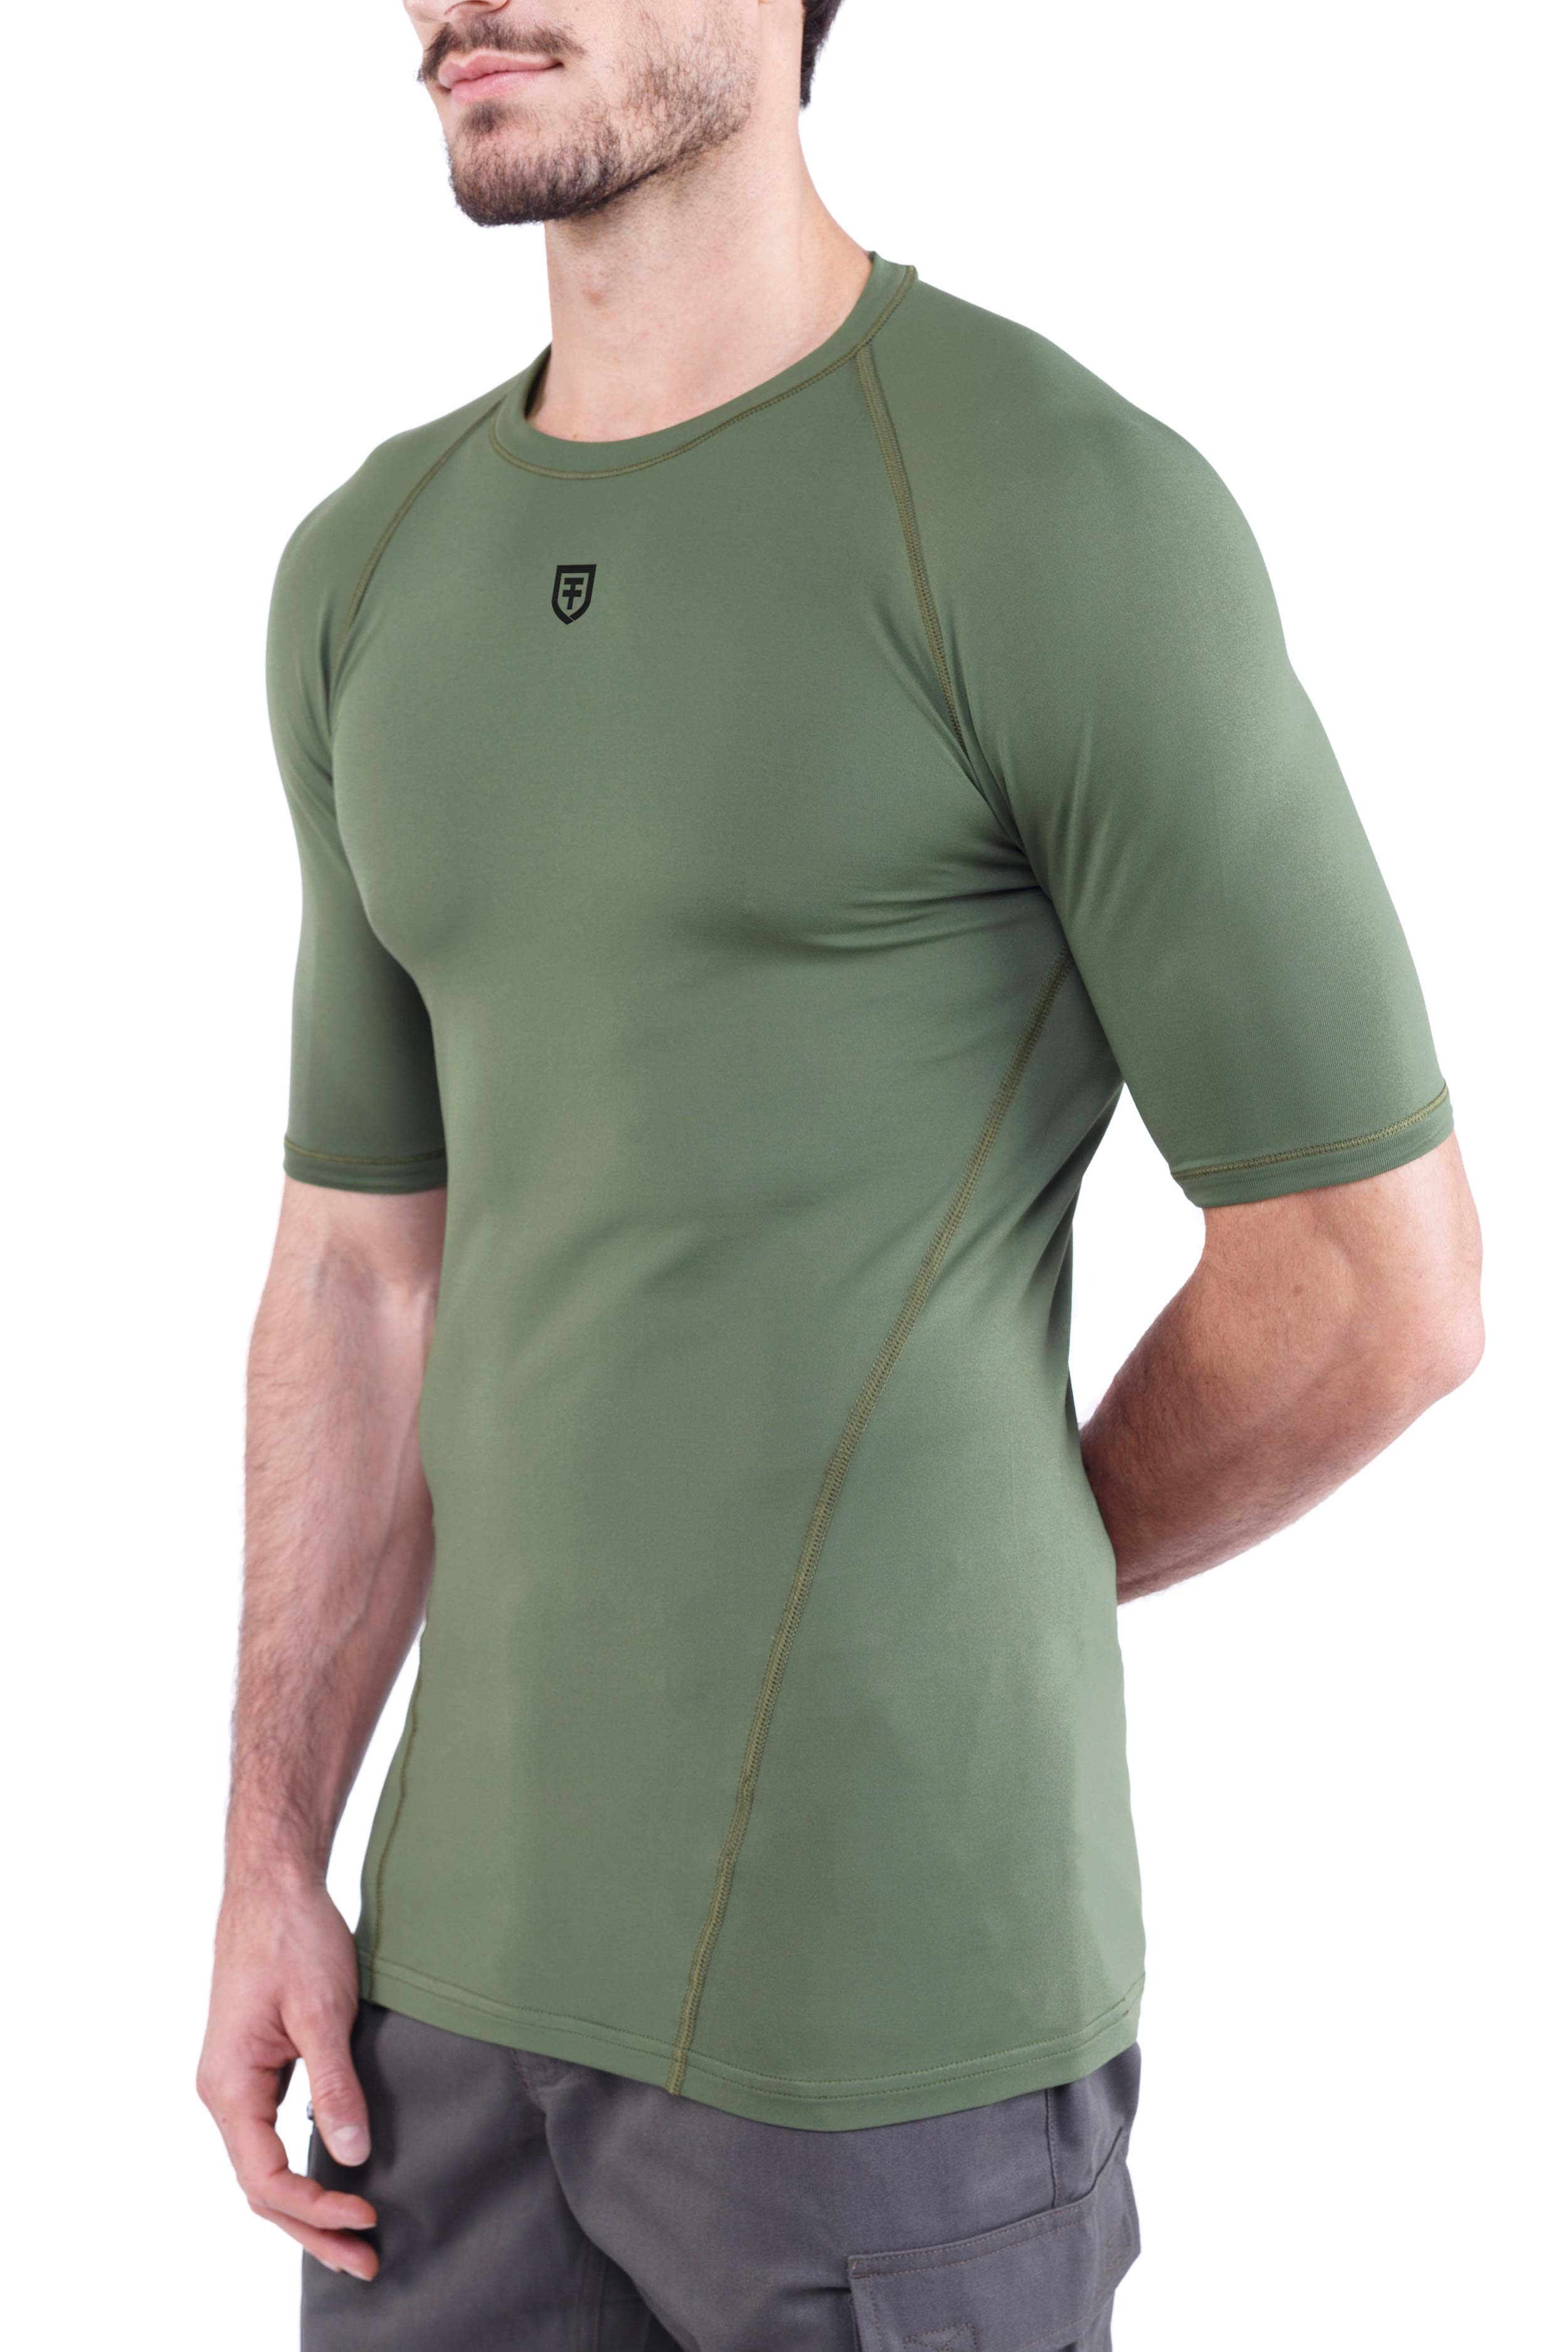 TACTICAL TRAINING T-SHIRT